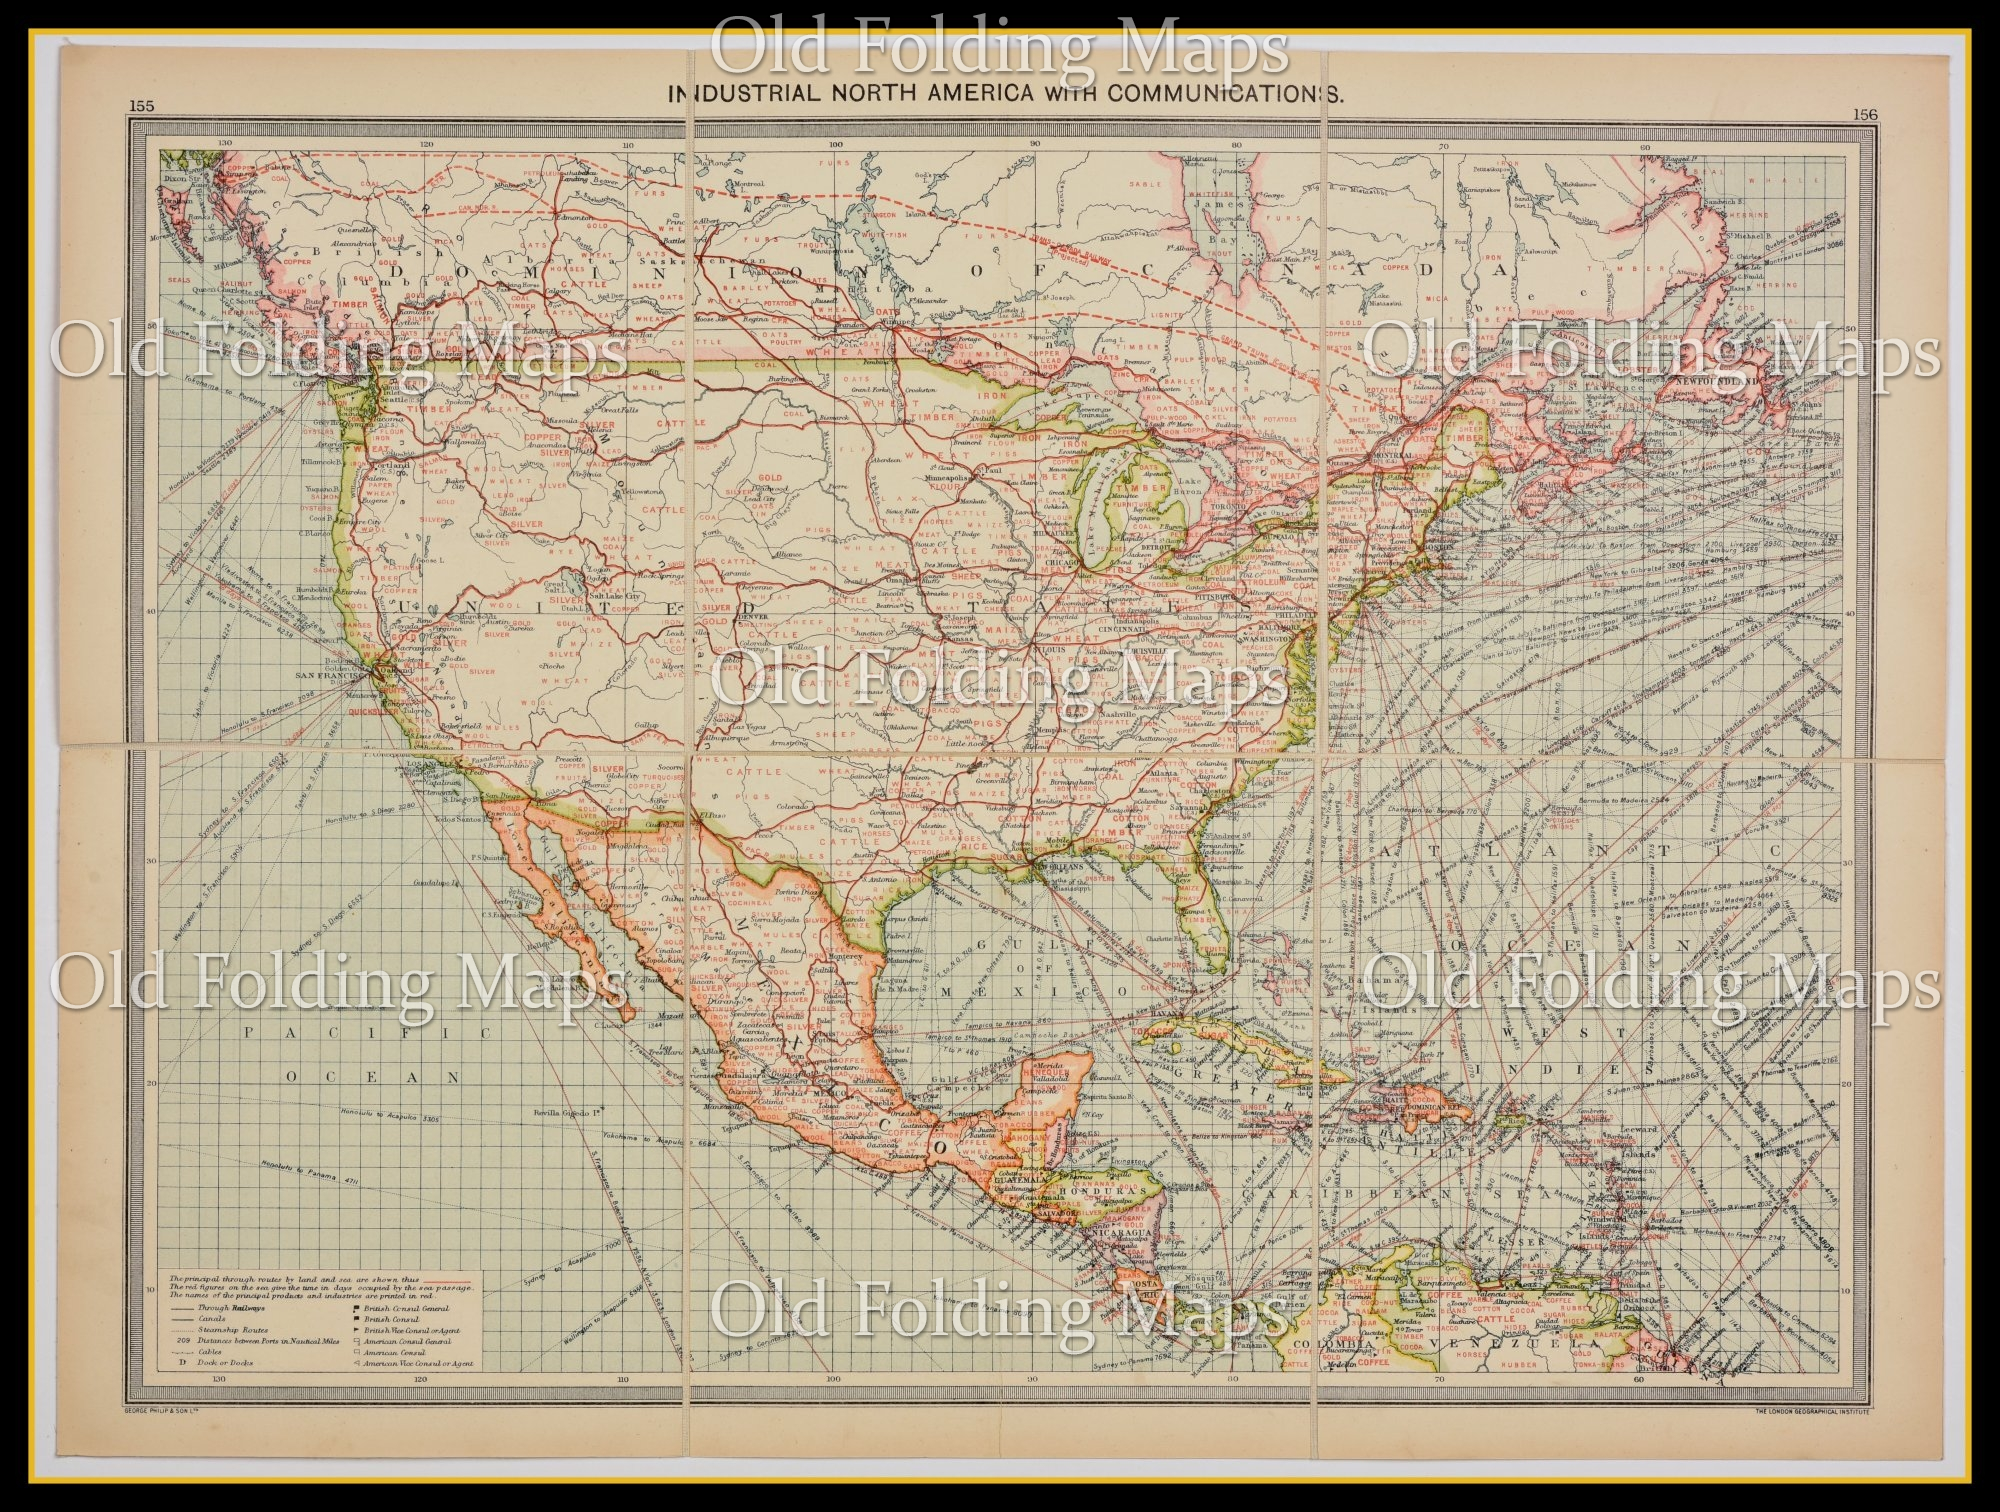 Old Map Of North America Industries Communications Circa 1900